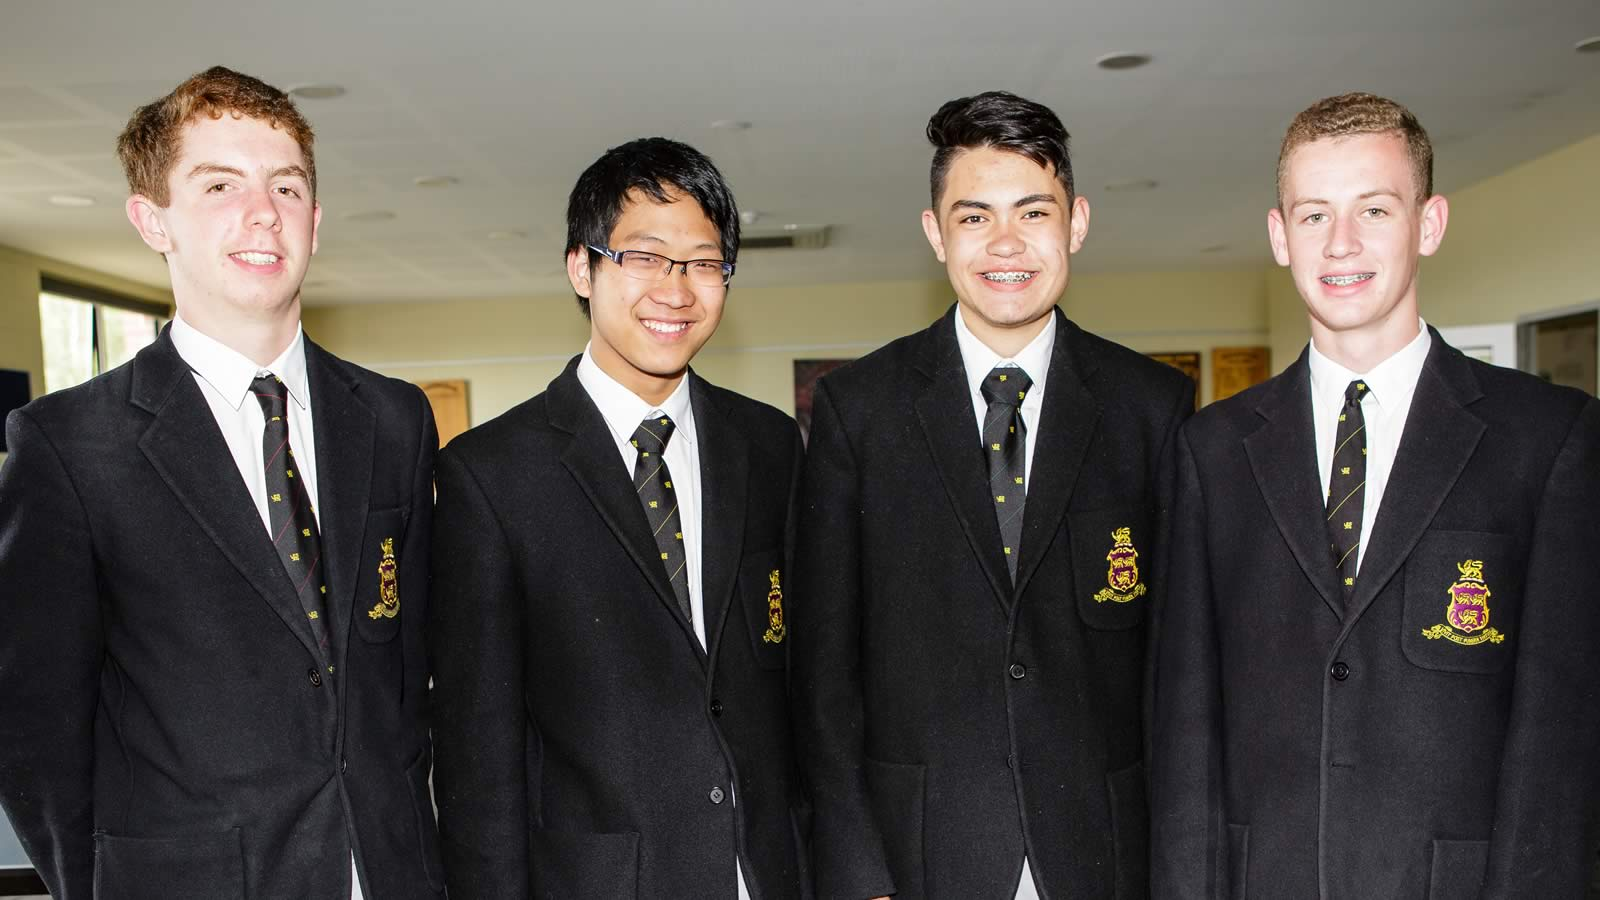 L–R James Moroney, Robert Jiang, Peter Mercado and Harrison Wallace (large)